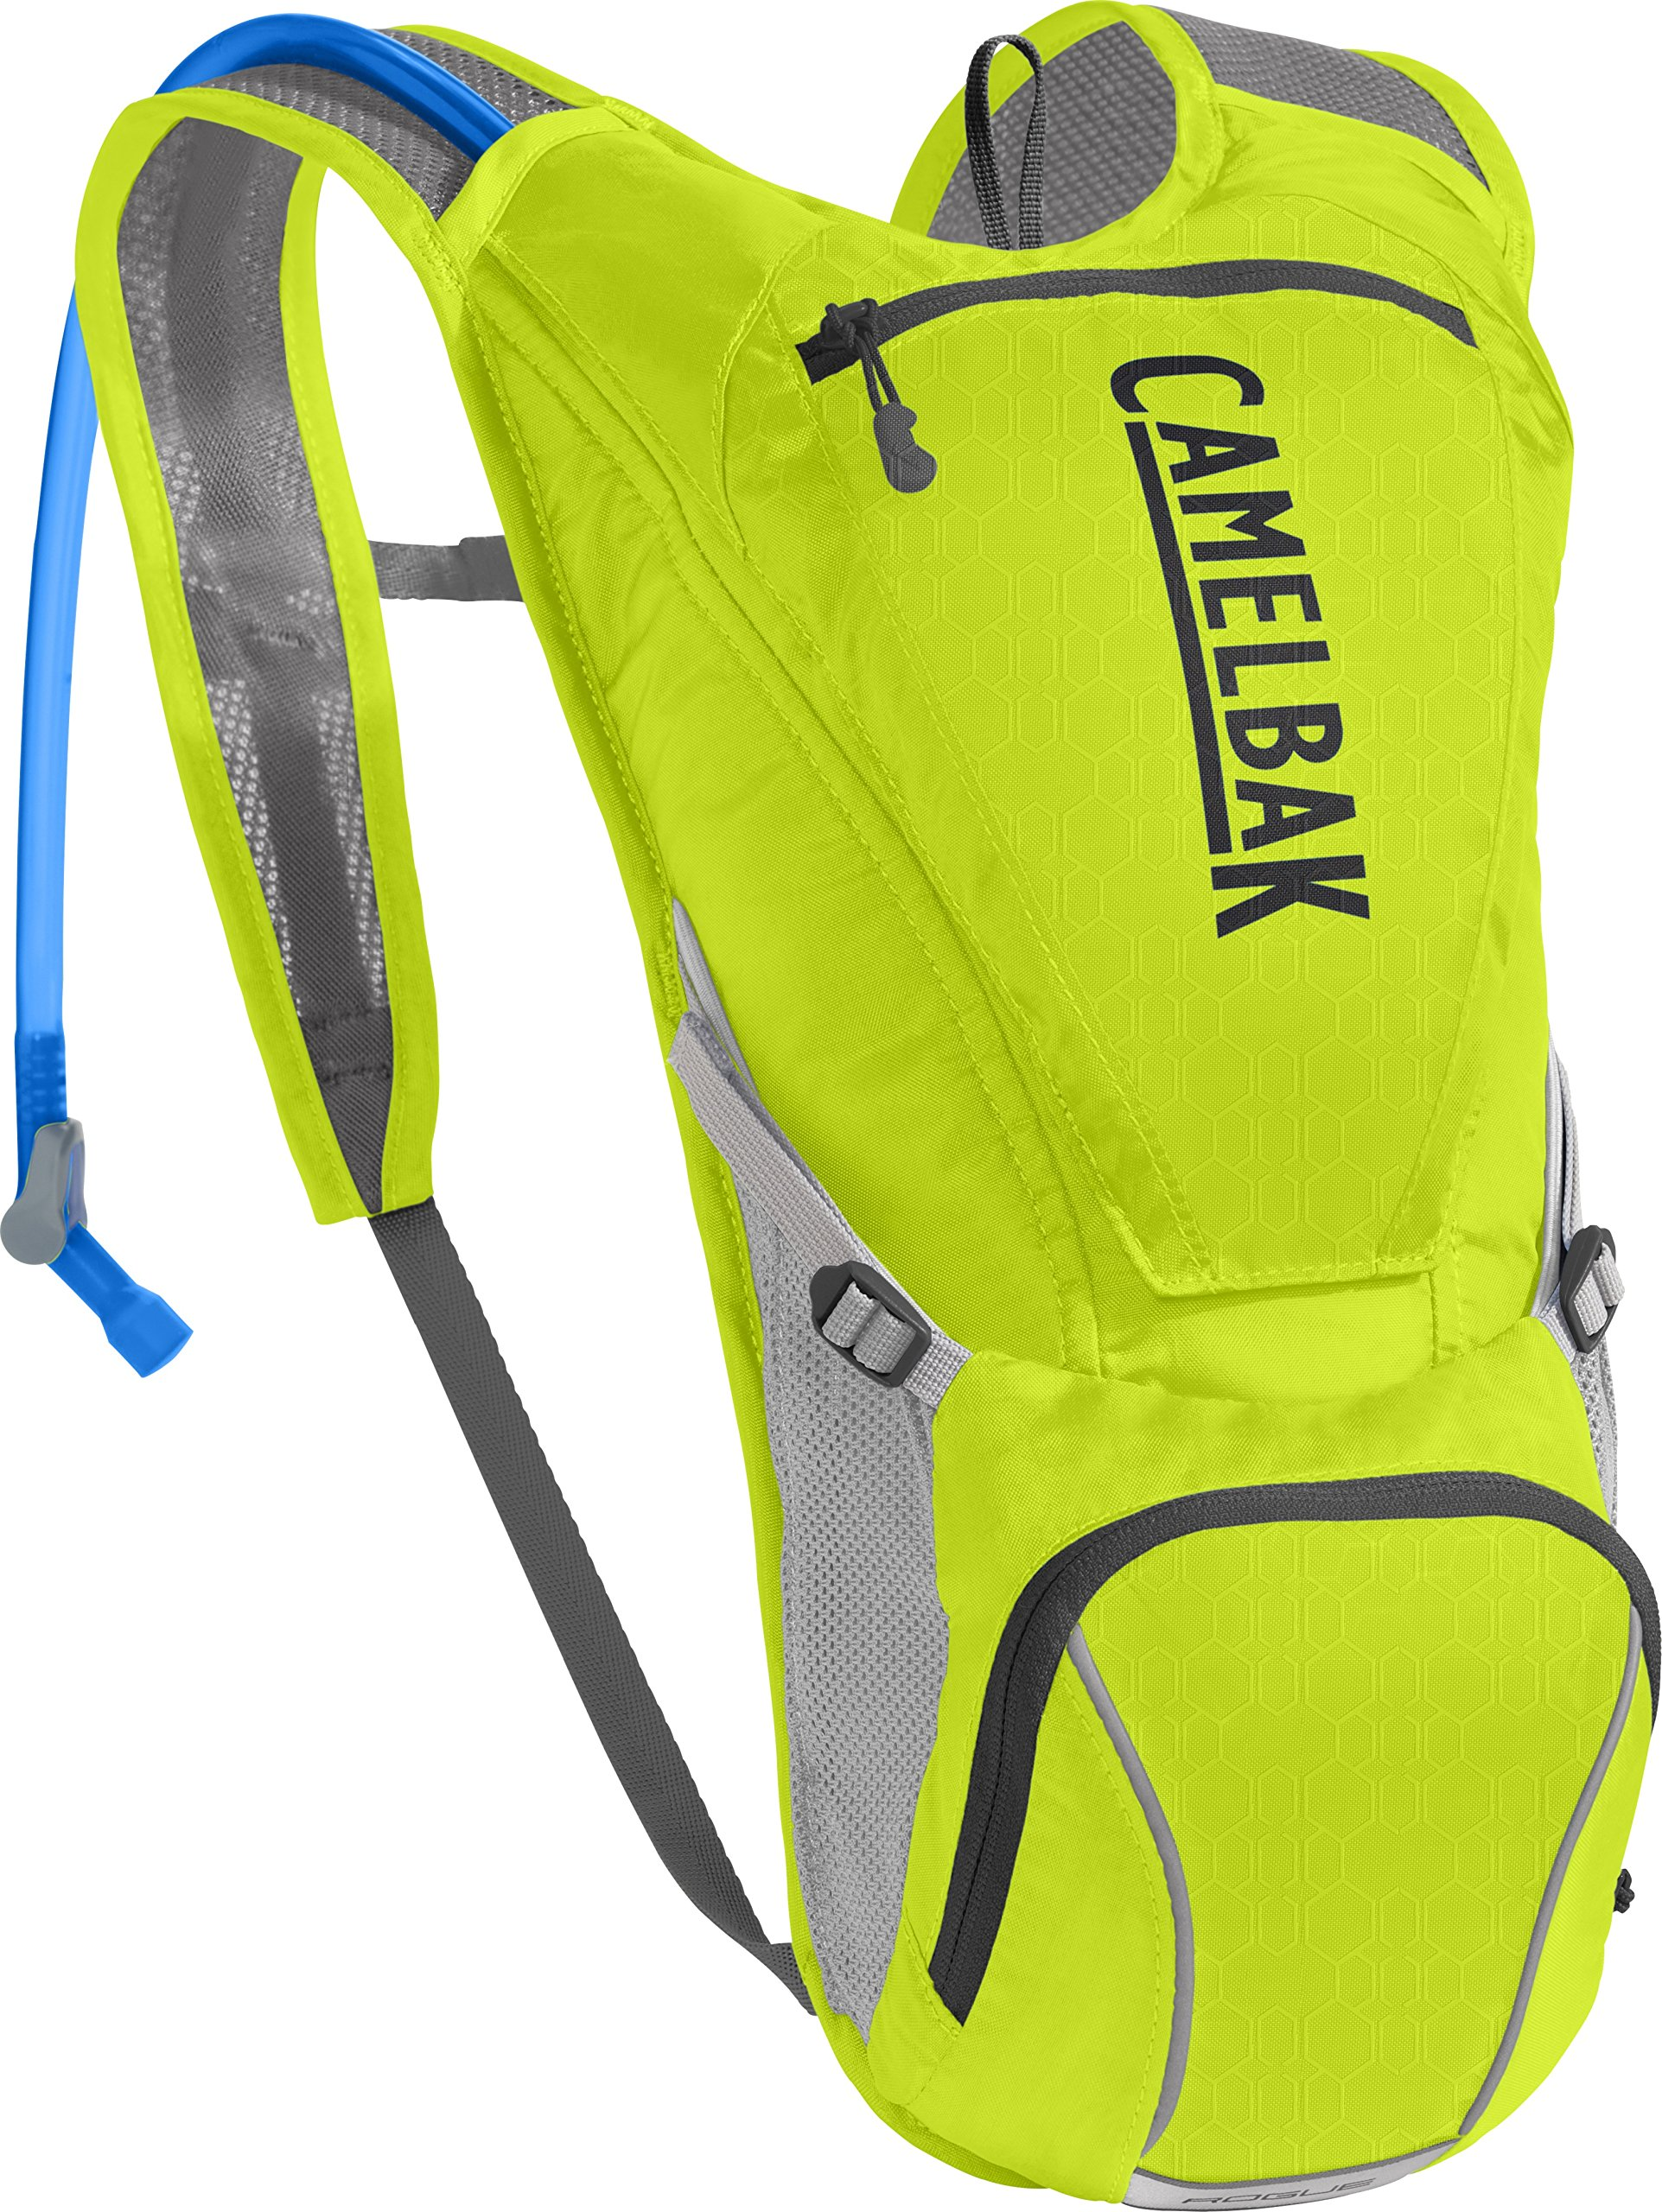 CamelBak Rogue Crux Reservoir Hydration Pack, Lime Punch/Silver, 2.5 Large/85 Oz by CamelBak